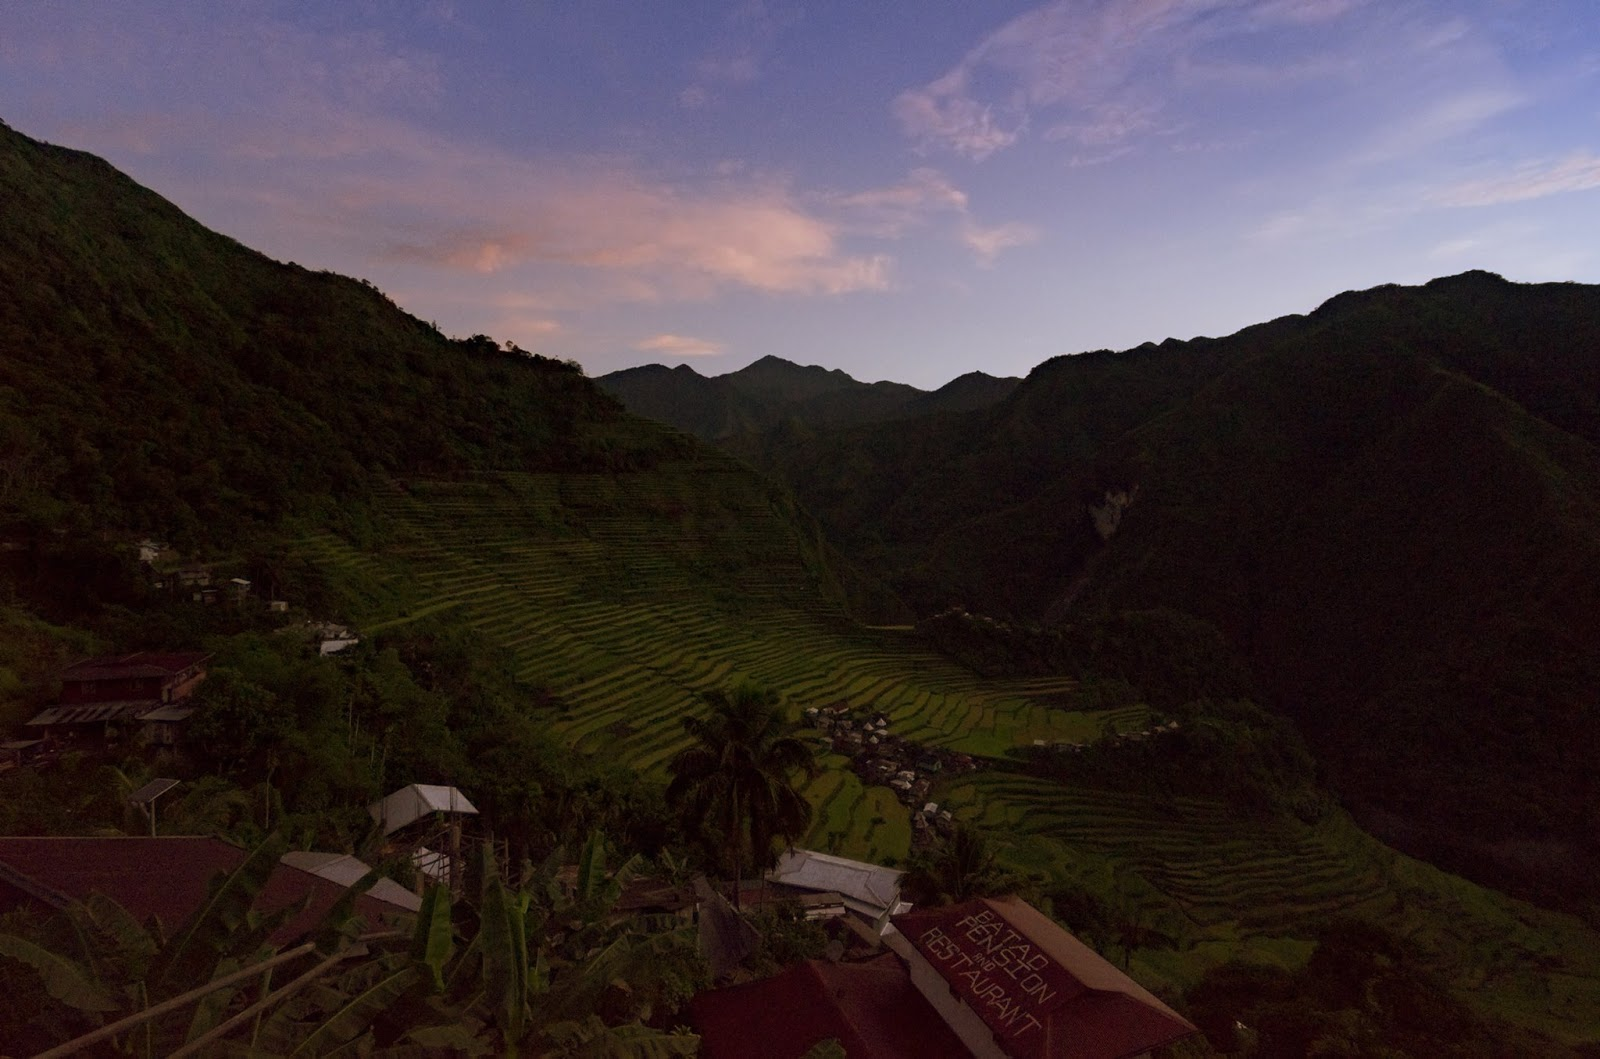 8th Wonder of the World Batad Rice Terraces Ifugao Cordillera Administrative Region Philippines Dawn